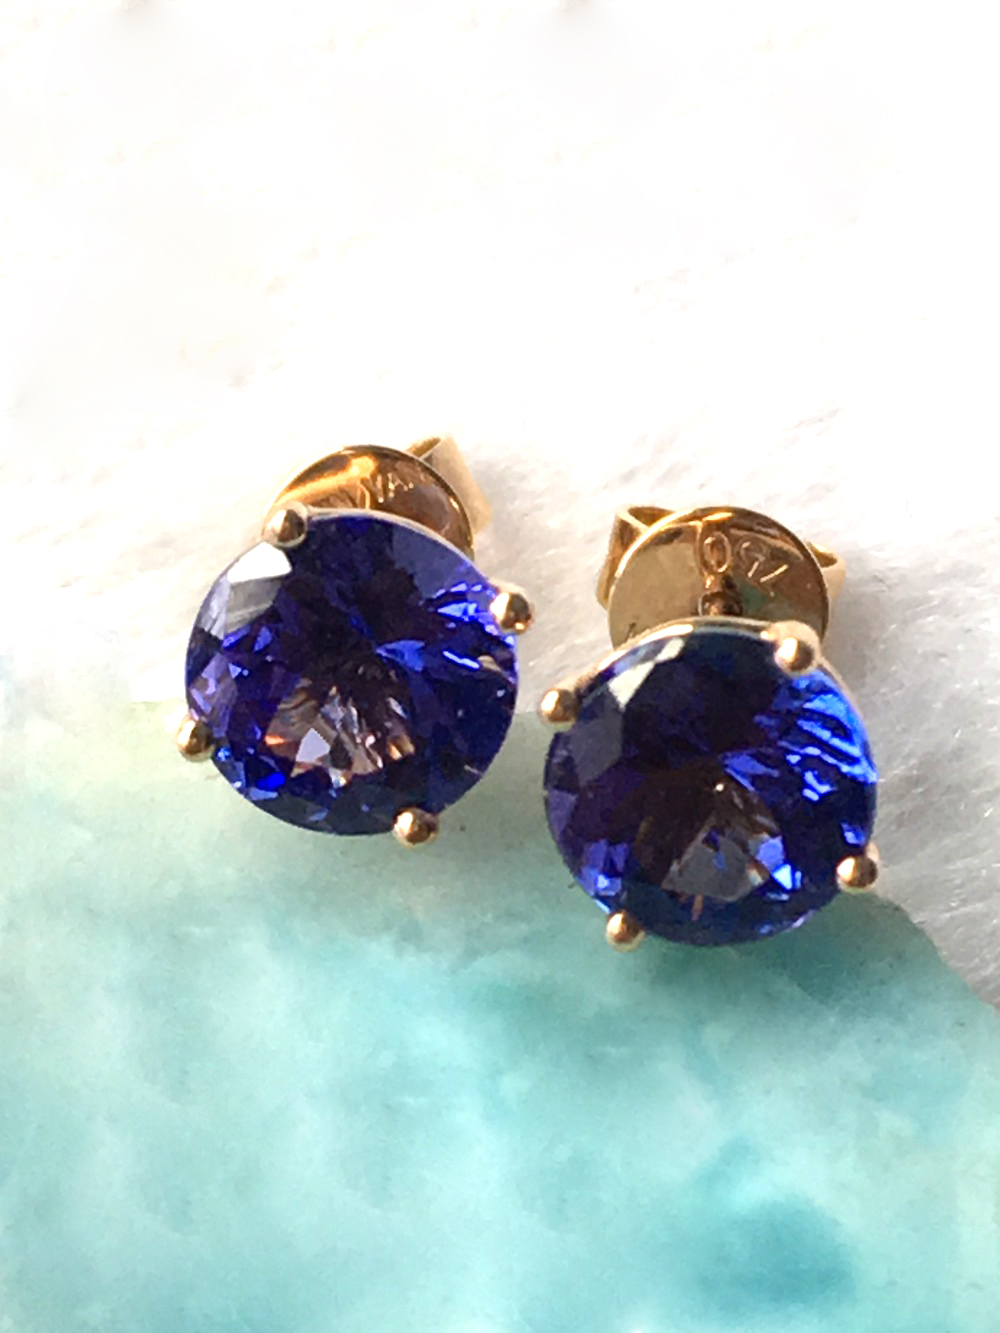 Natural Tanzanite Rose Gold Earring, 18K Rose Gold, Rare Tanzanite In Round 6mm*6mm , Classical Style, Fashion And Popular